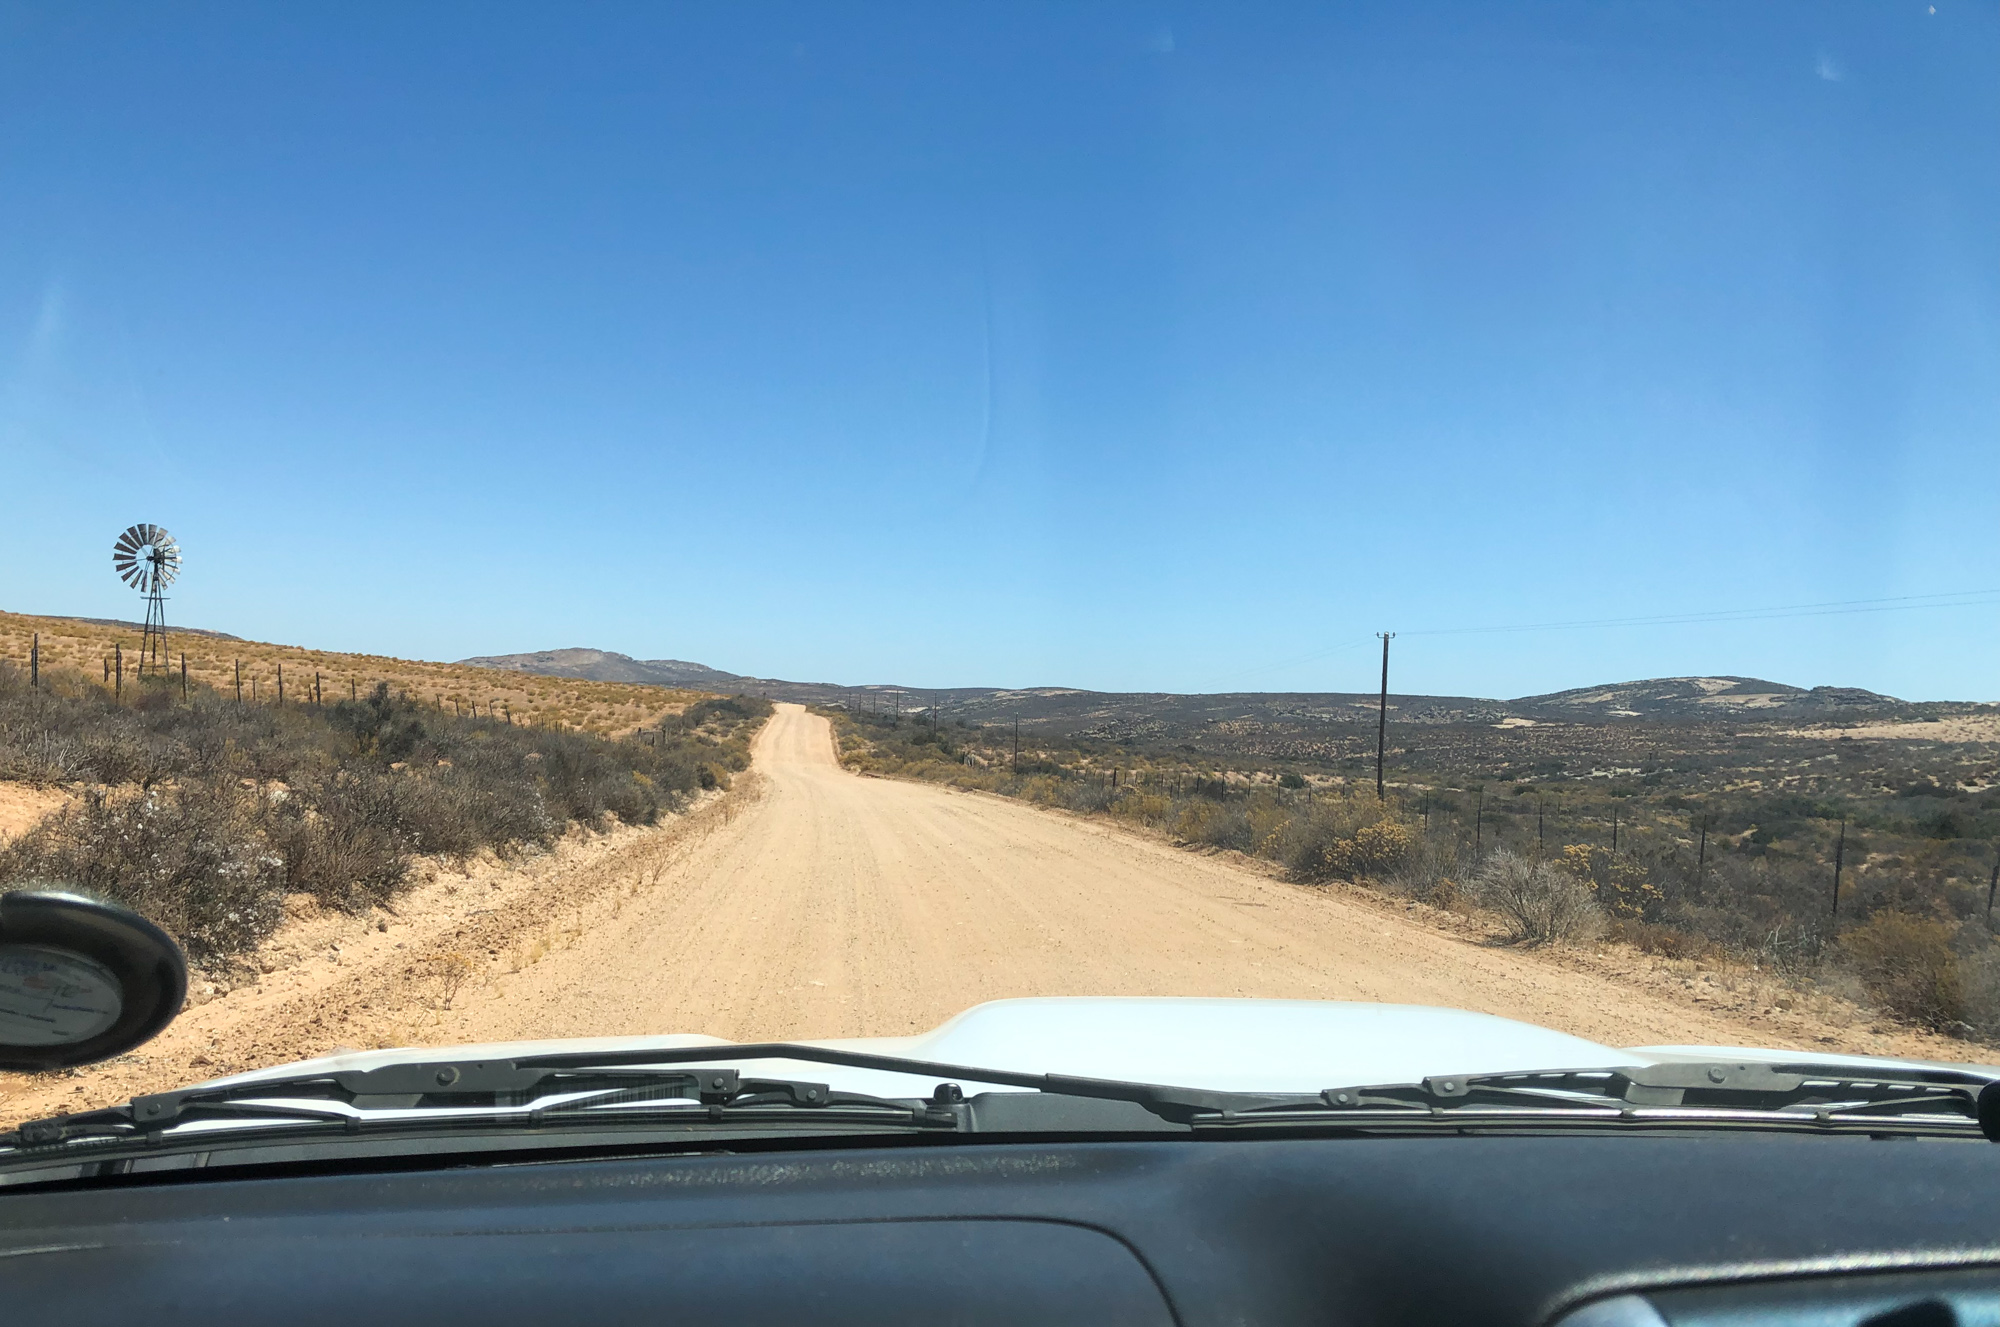 Suzuki Jimny road trip in South Africa